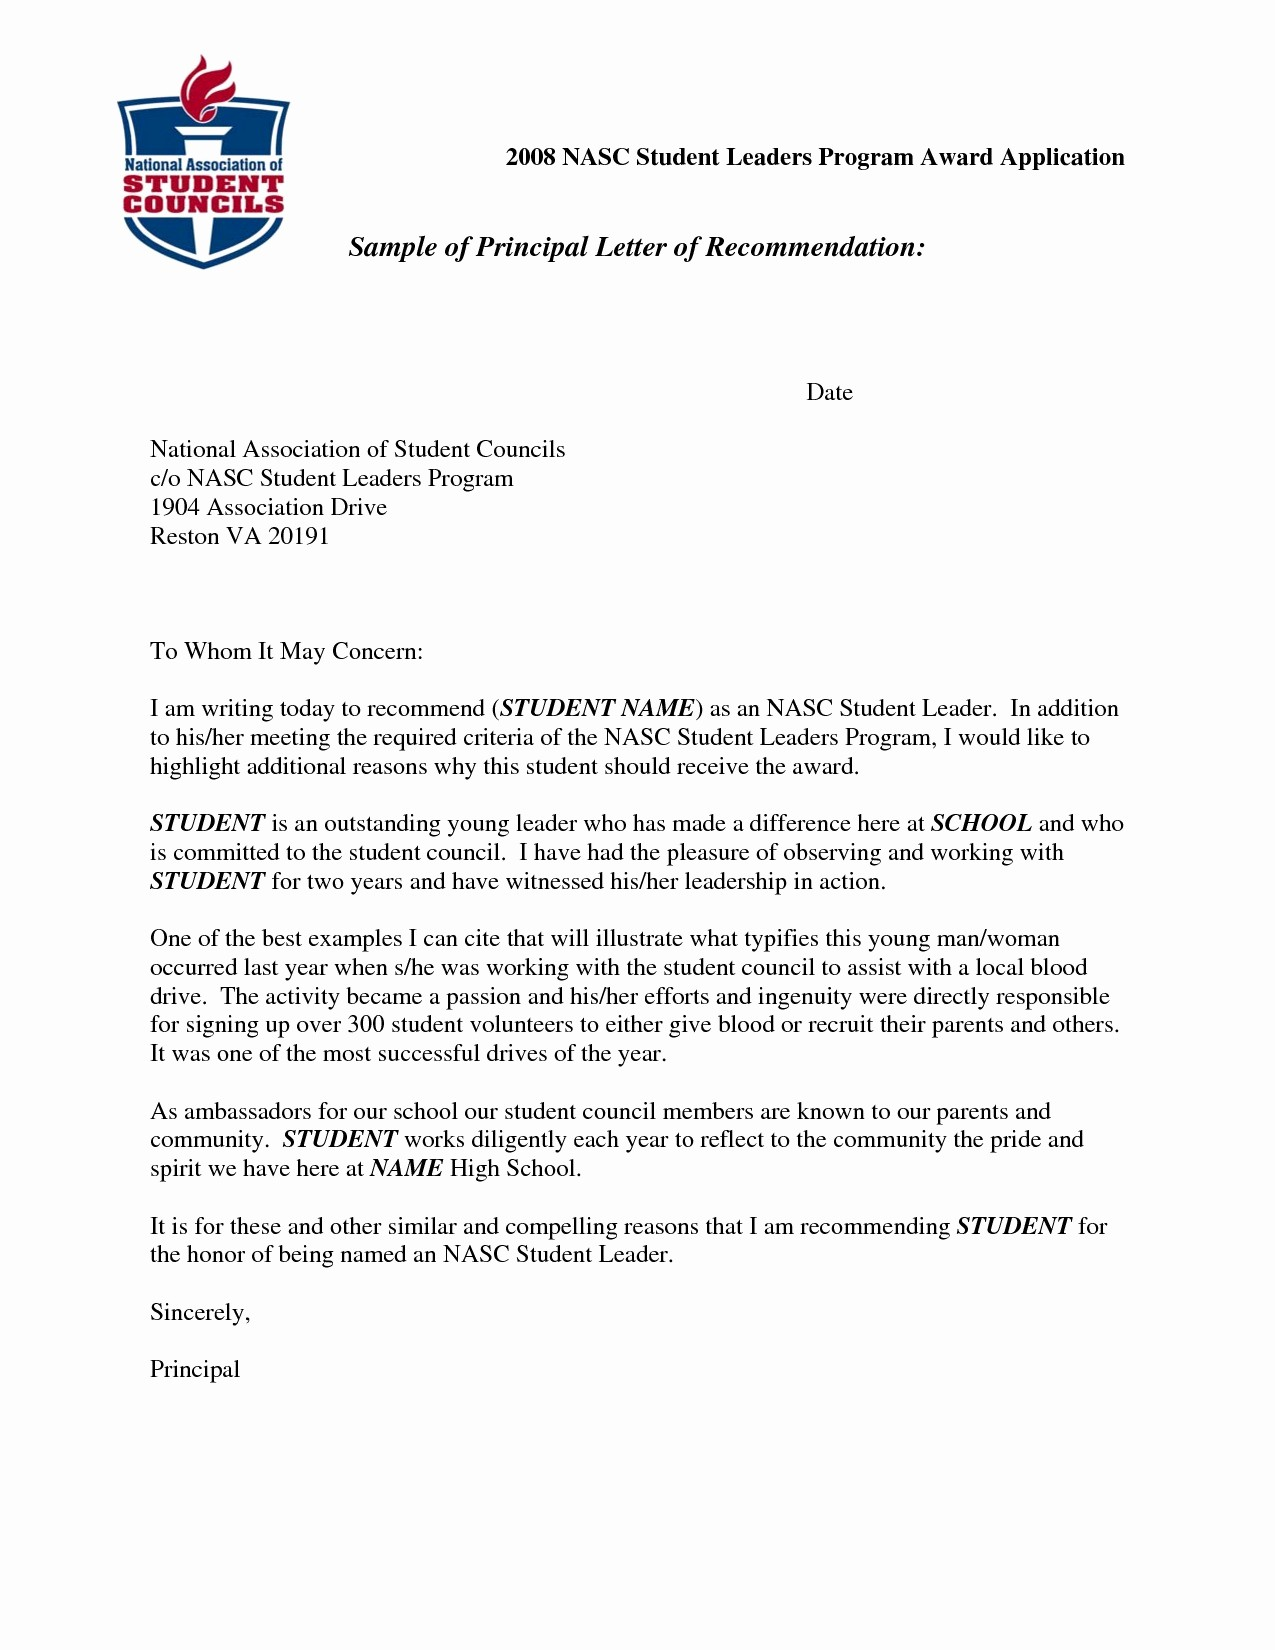 Recommendation Letter format for Student Elegant Sample Re Mendation Letter for Student